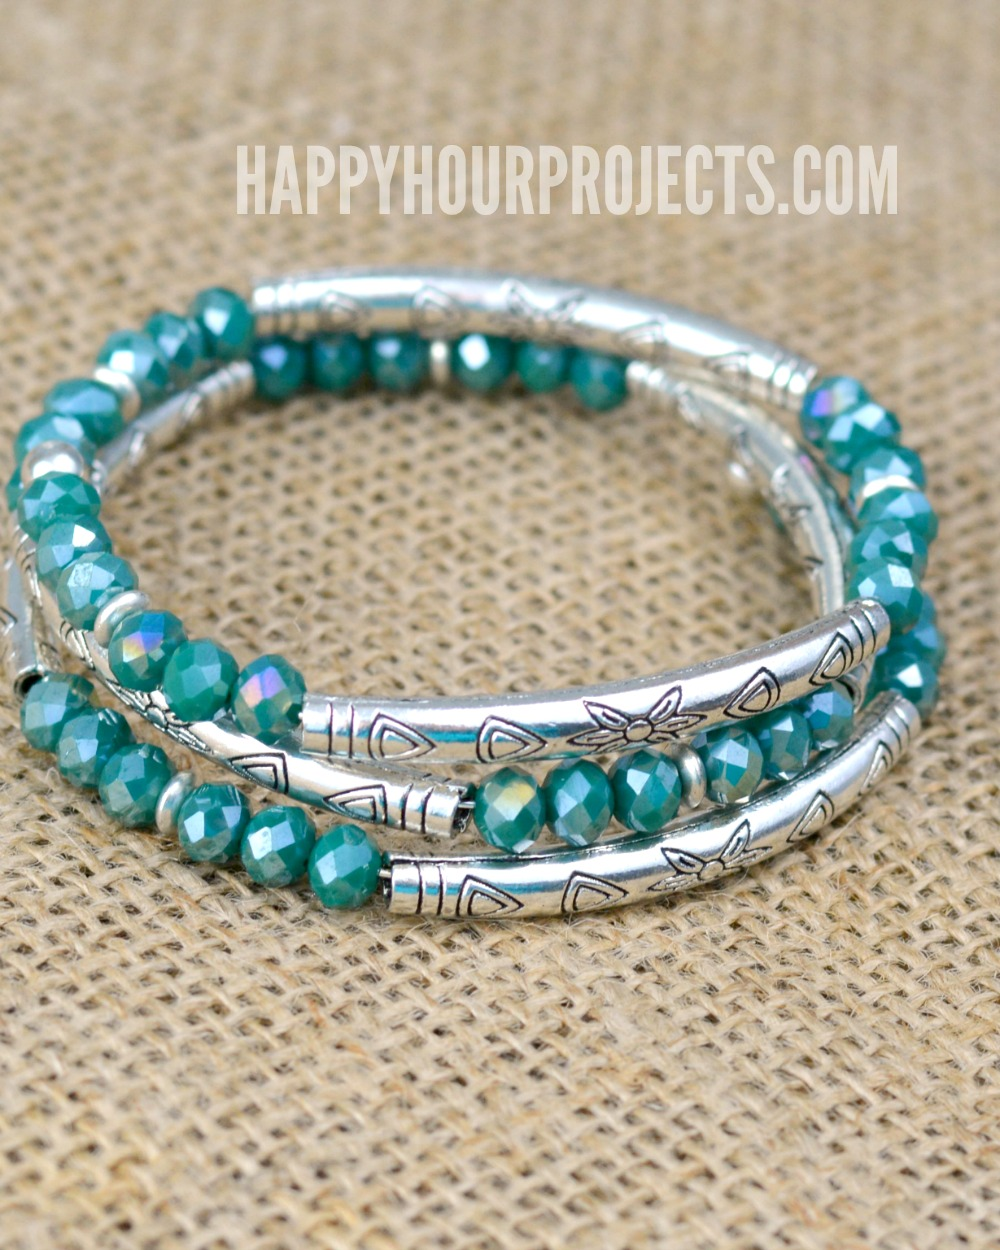 Crystal Bead Diy Memory Wire Bracelet At Hyhourprojects